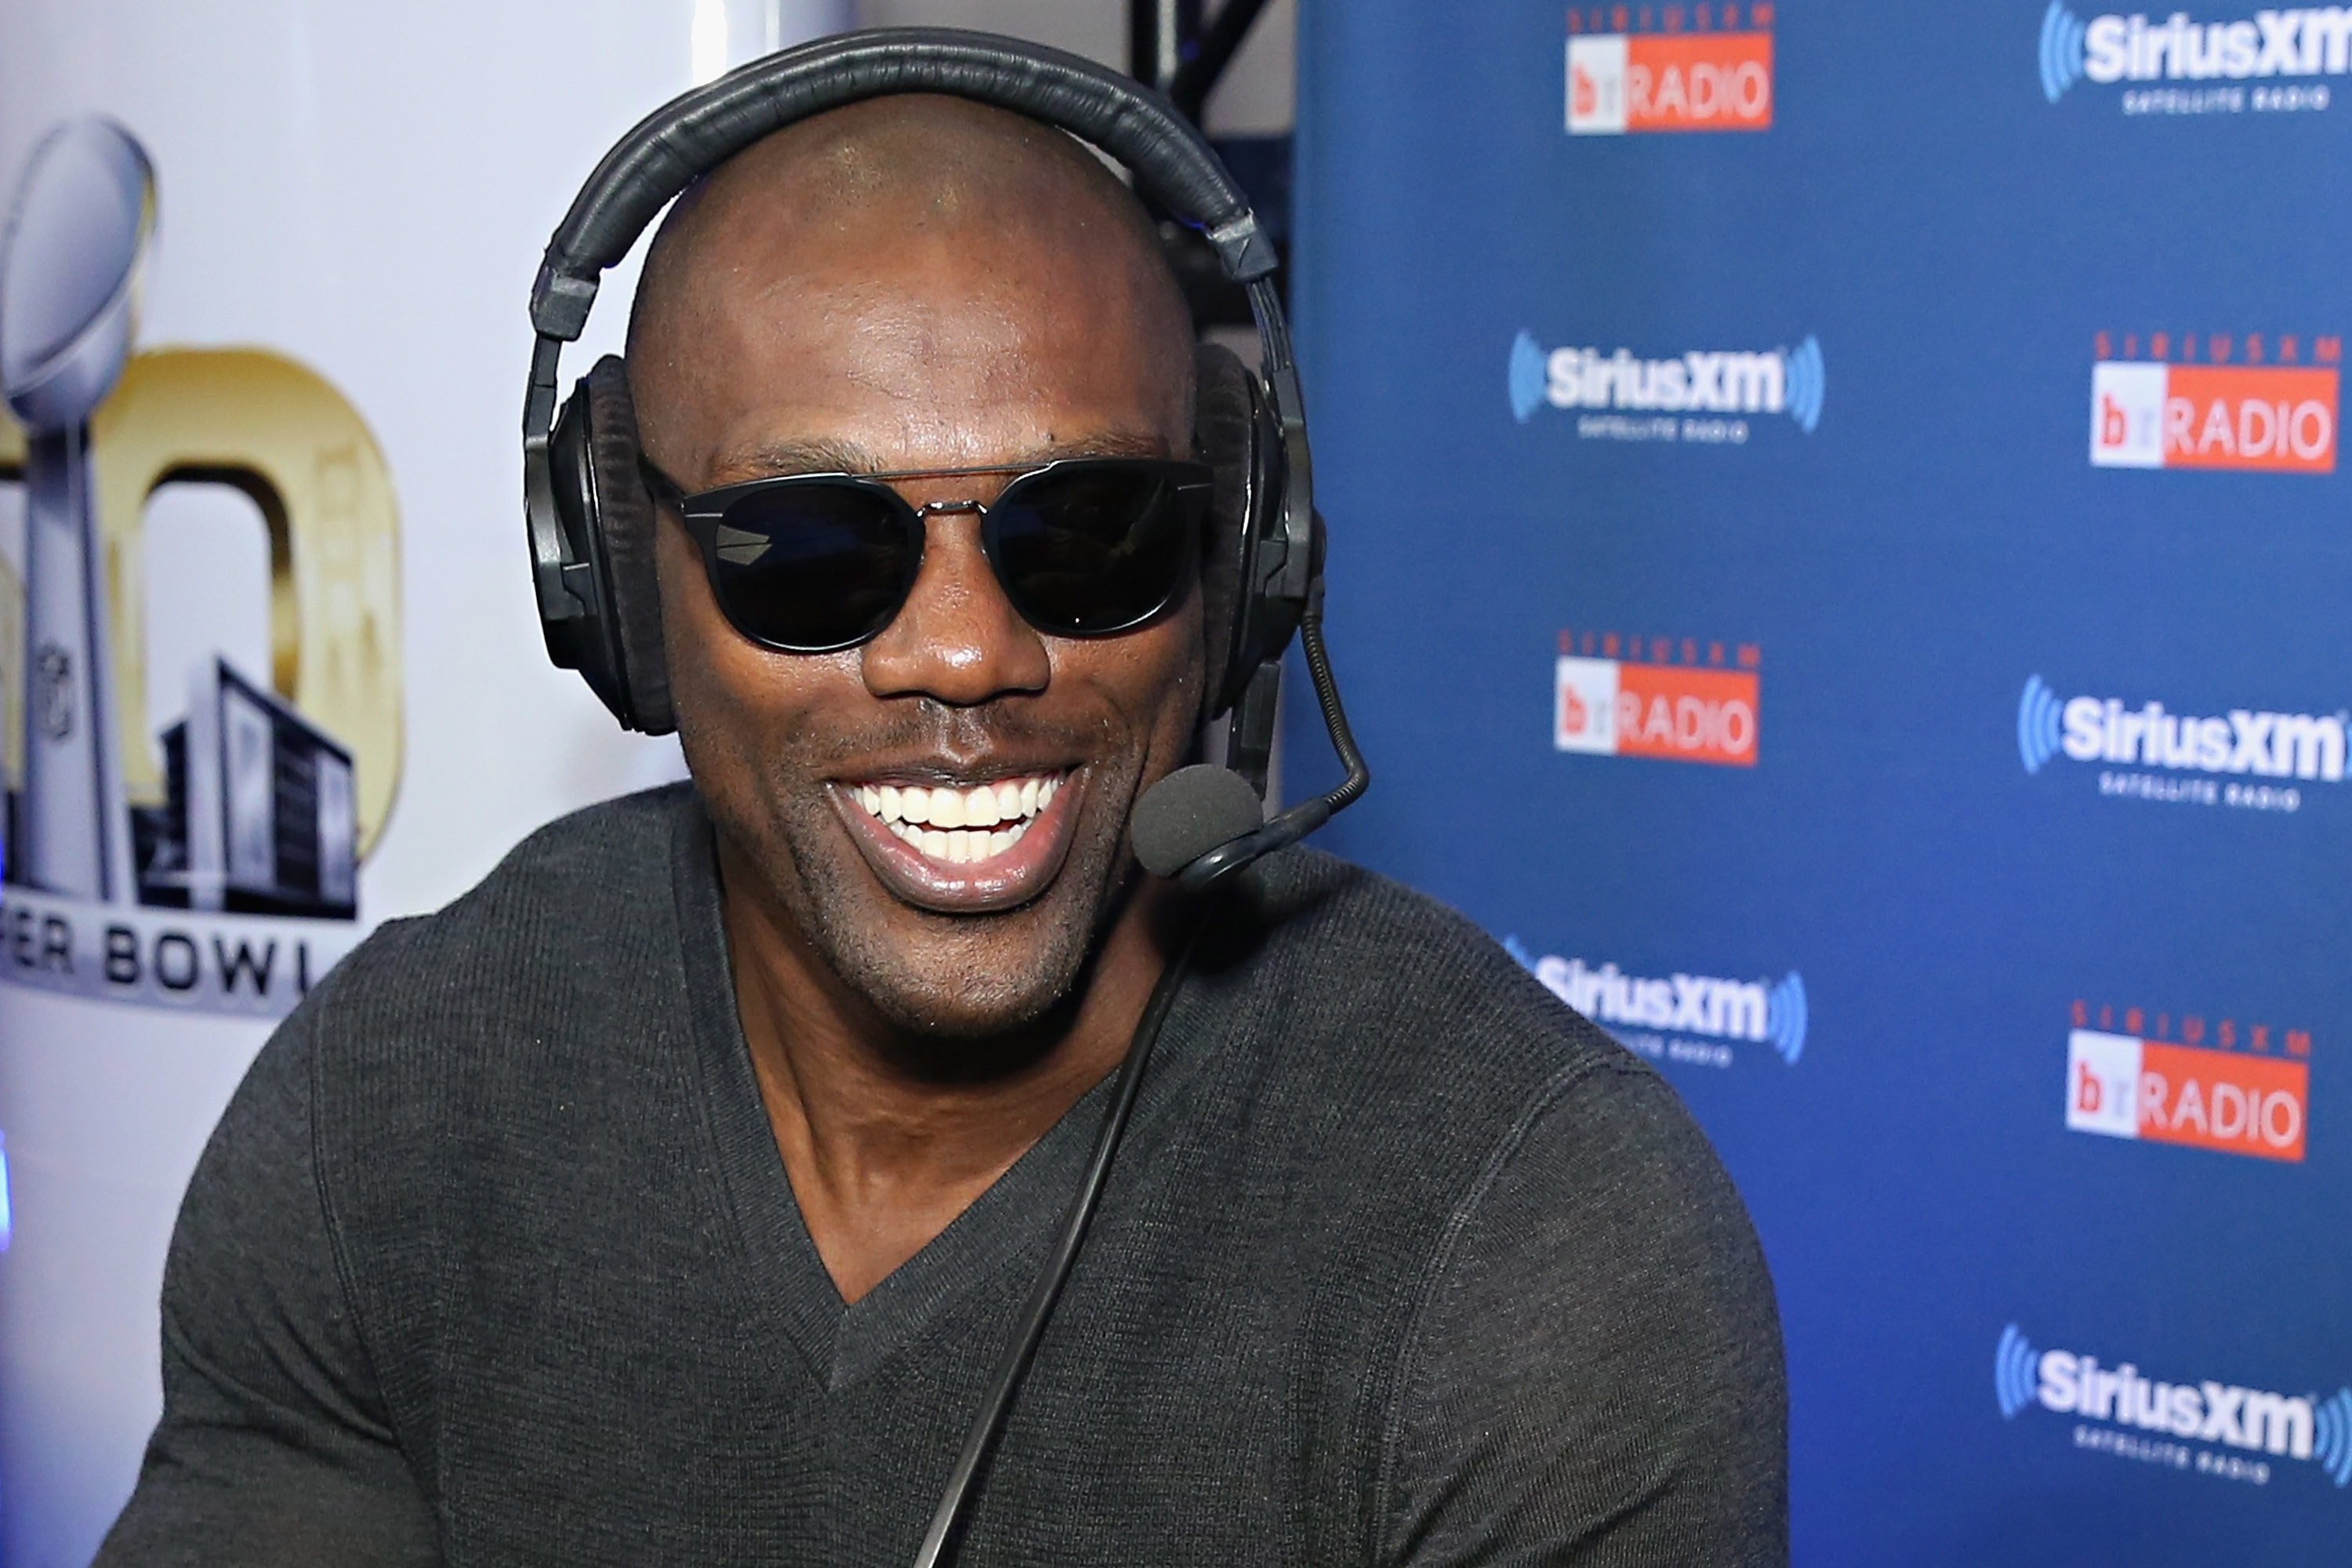 If election to the Pro Football Hall of Fame were based solely on statistics, Terrell Owens would have been voted in on the first ballot, says Jerry Sullivan. (Photo by Cindy Ord/Getty Images for Sirius)